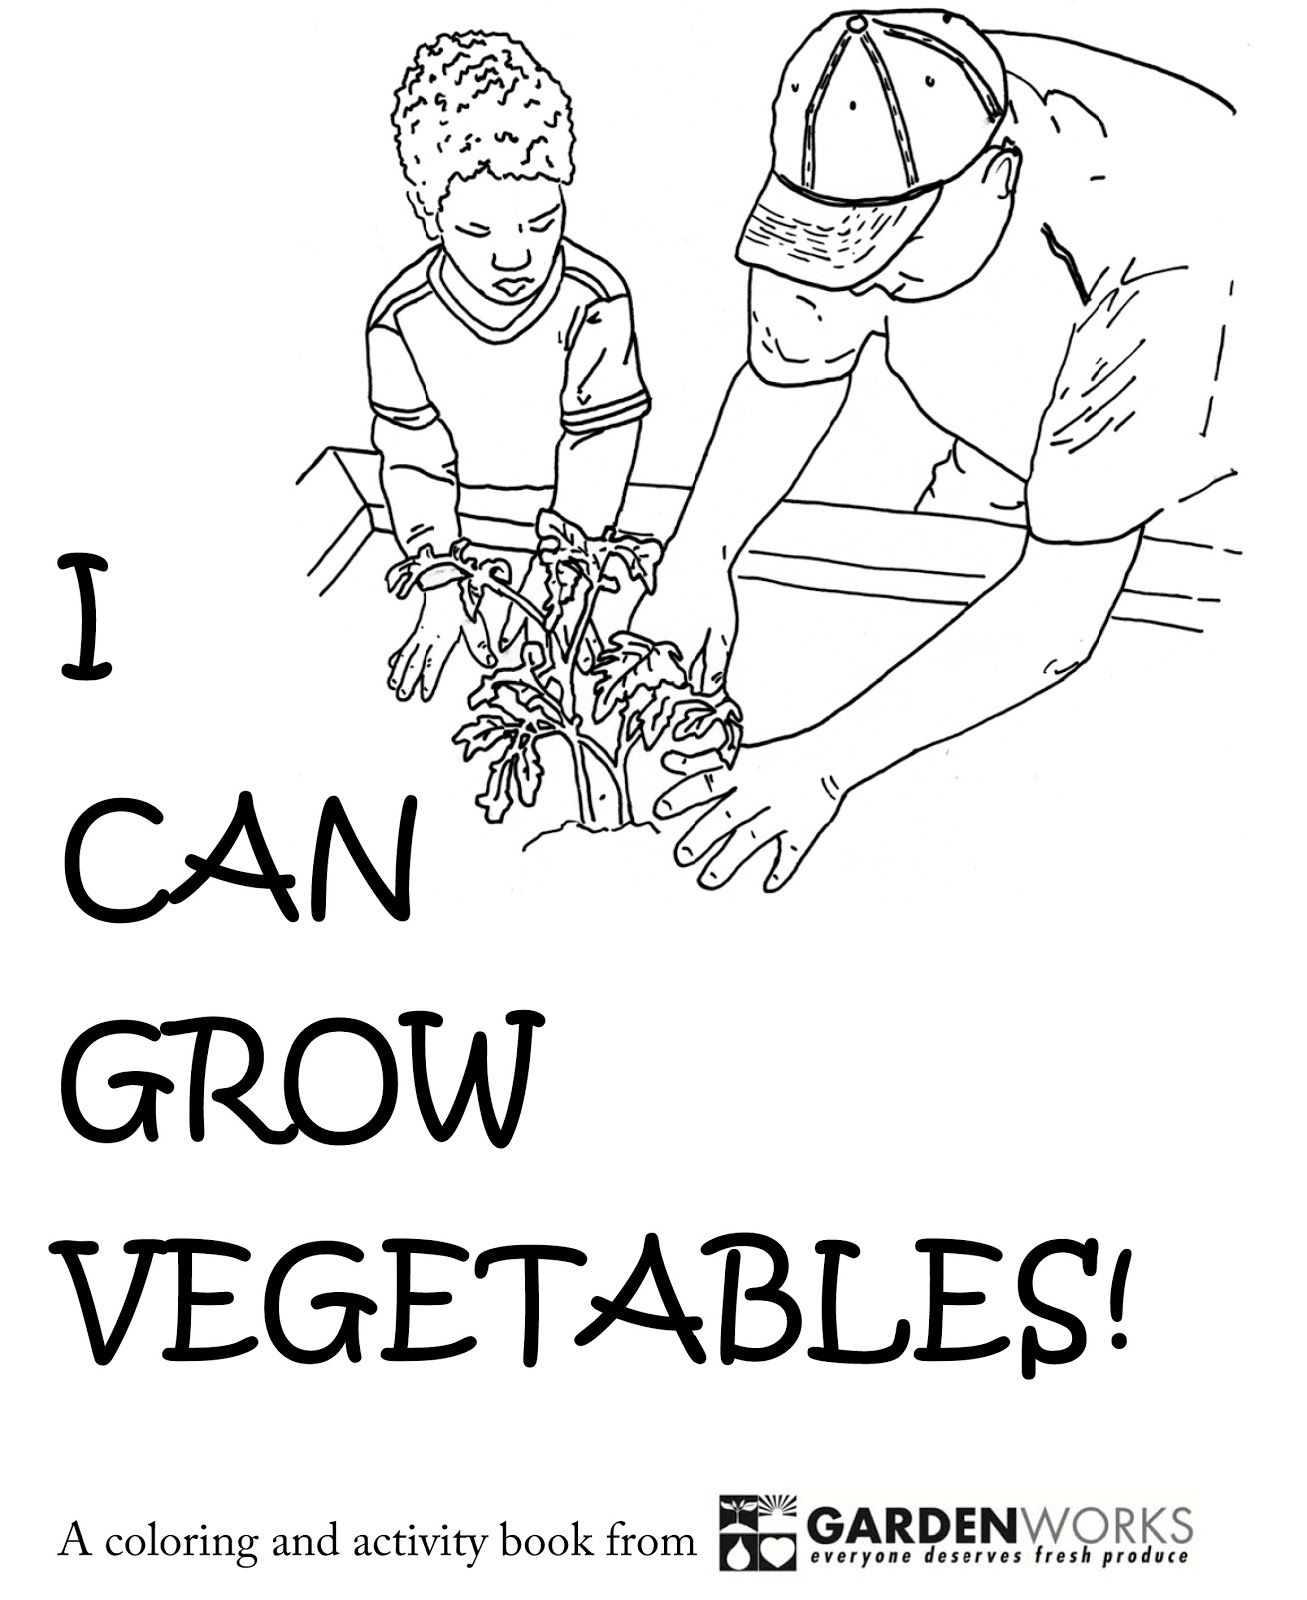 PDF coloring and activity book that teaches kids to grow